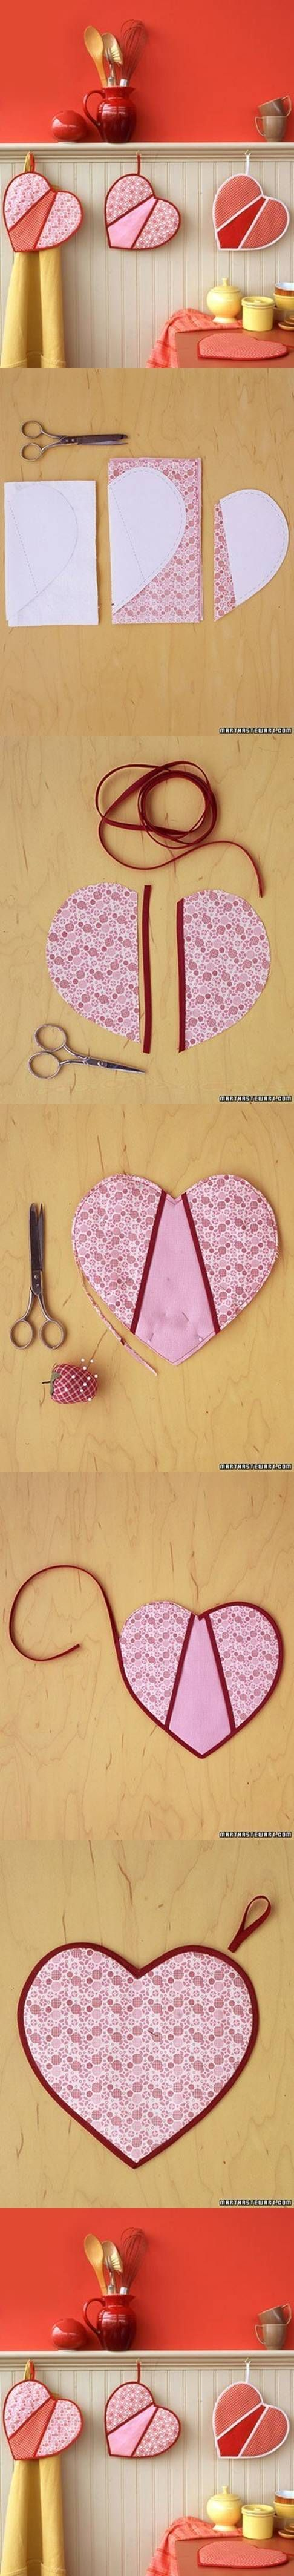 DIY Heart Shaped Pot Holders  <3                                                                                                                                                     More